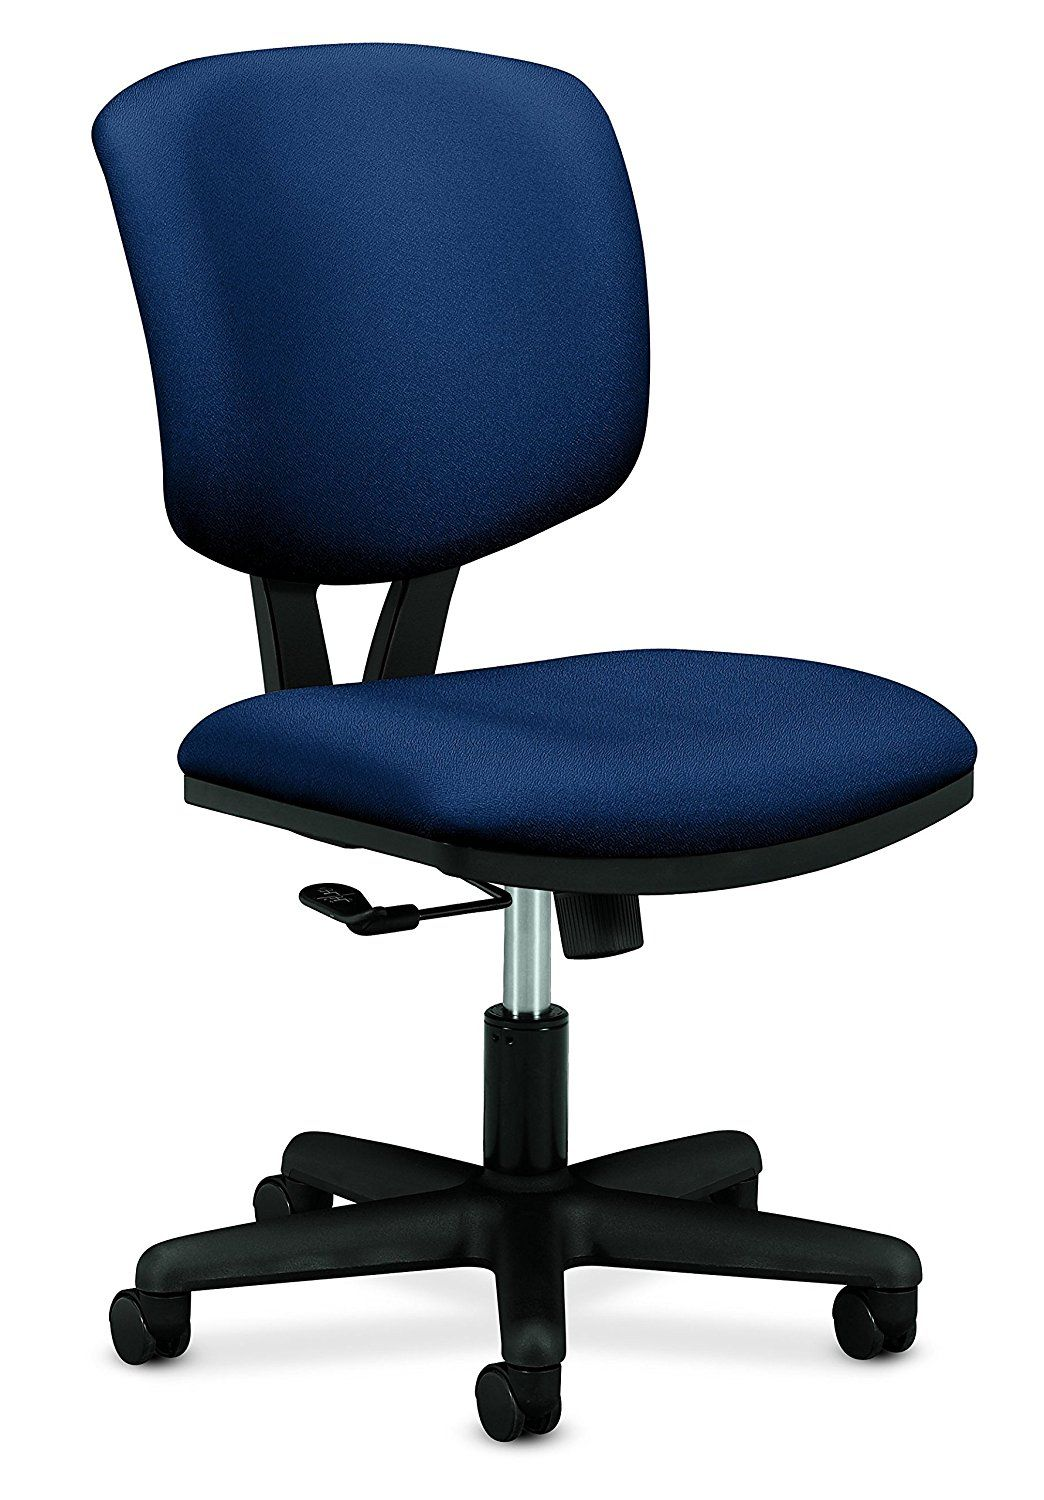 Top 10 Best Mid Back Task Chairs in 2020 Reviews (With